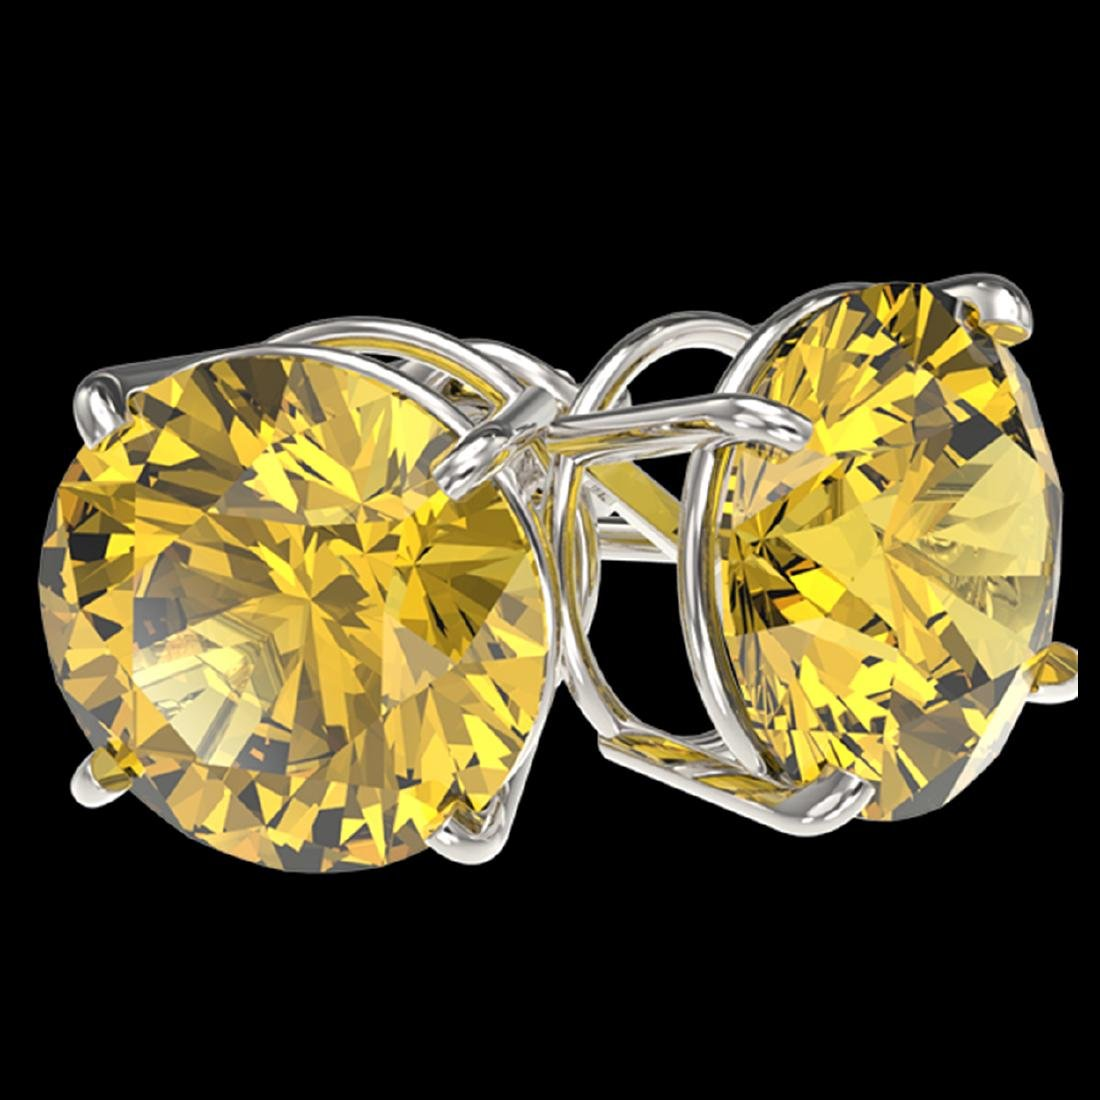 5 ctw Intense Yellow Diamond Stud Earrings 10K White - 3